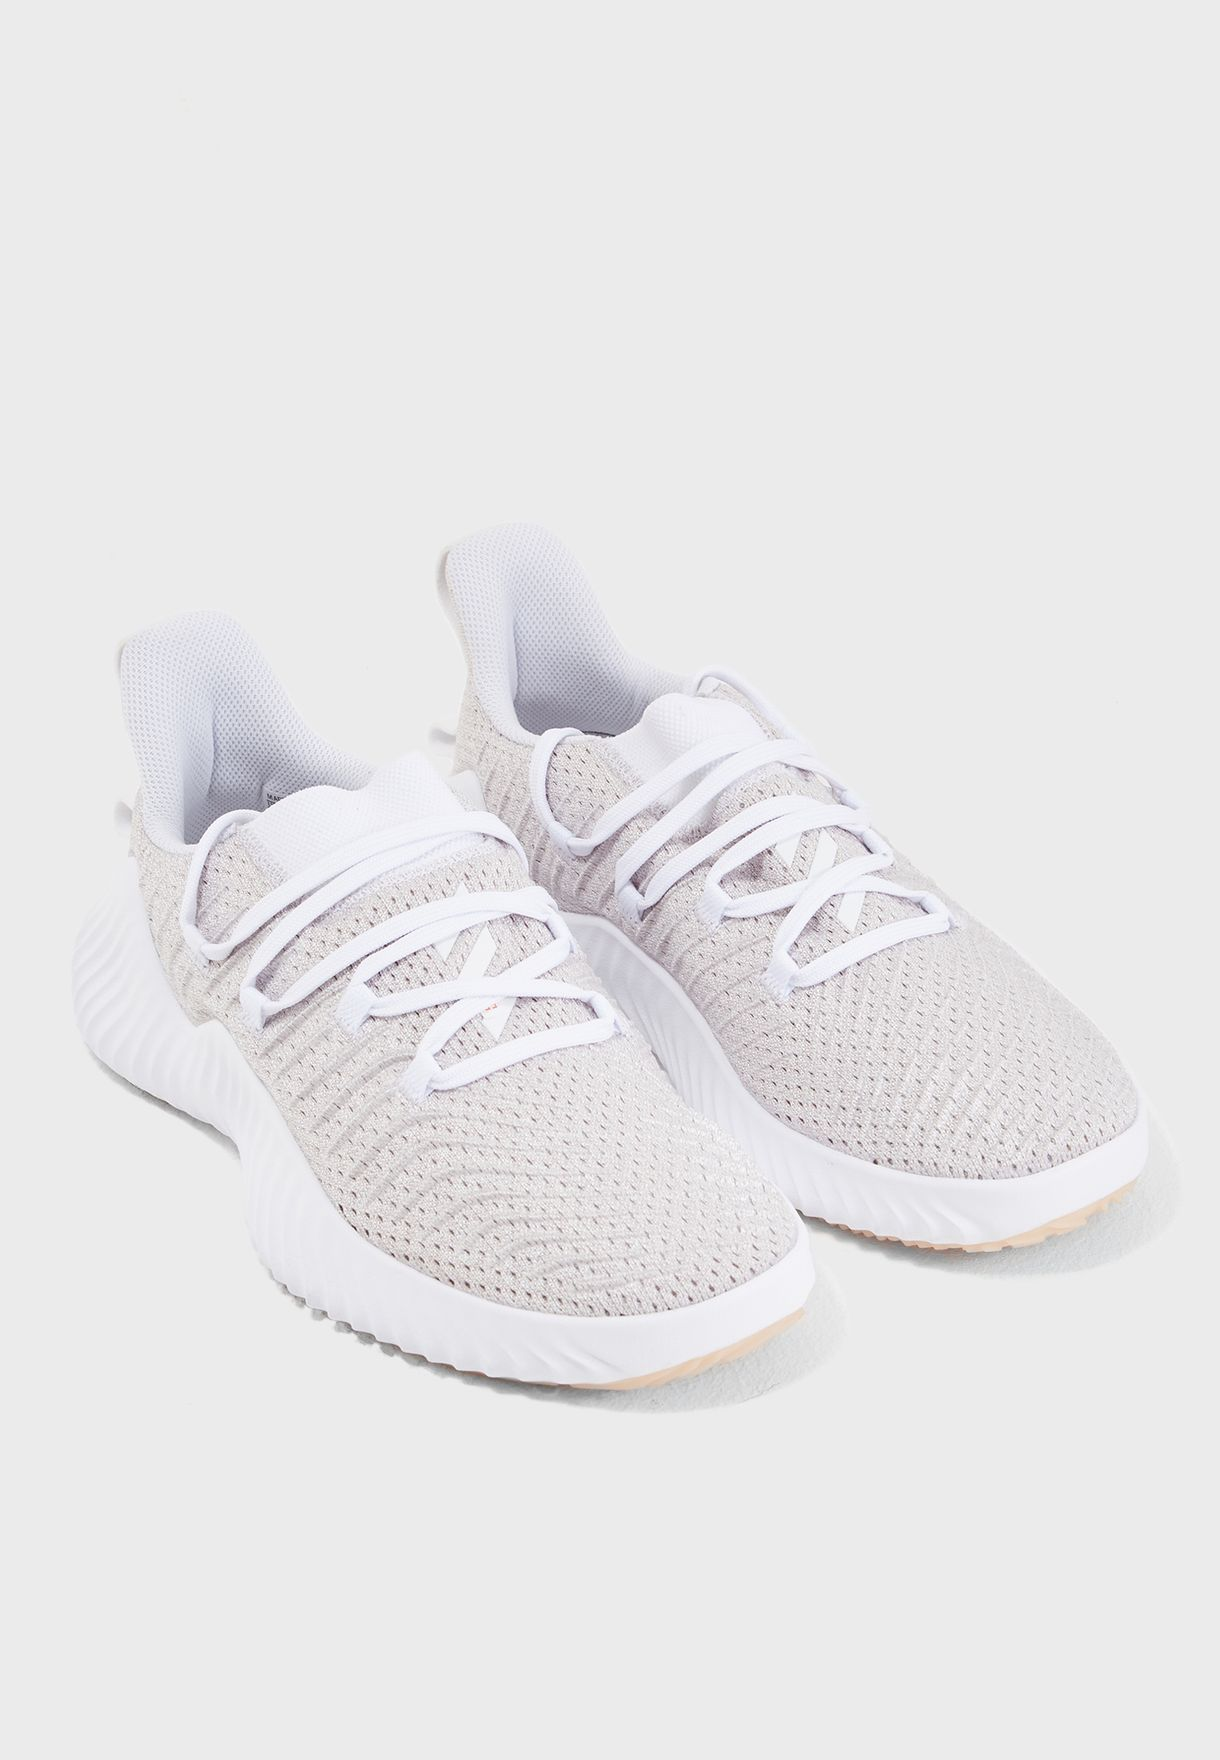 61218871c5245f Shop adidas beige Alphabounce Trainer B75780 for Women in UAE ...